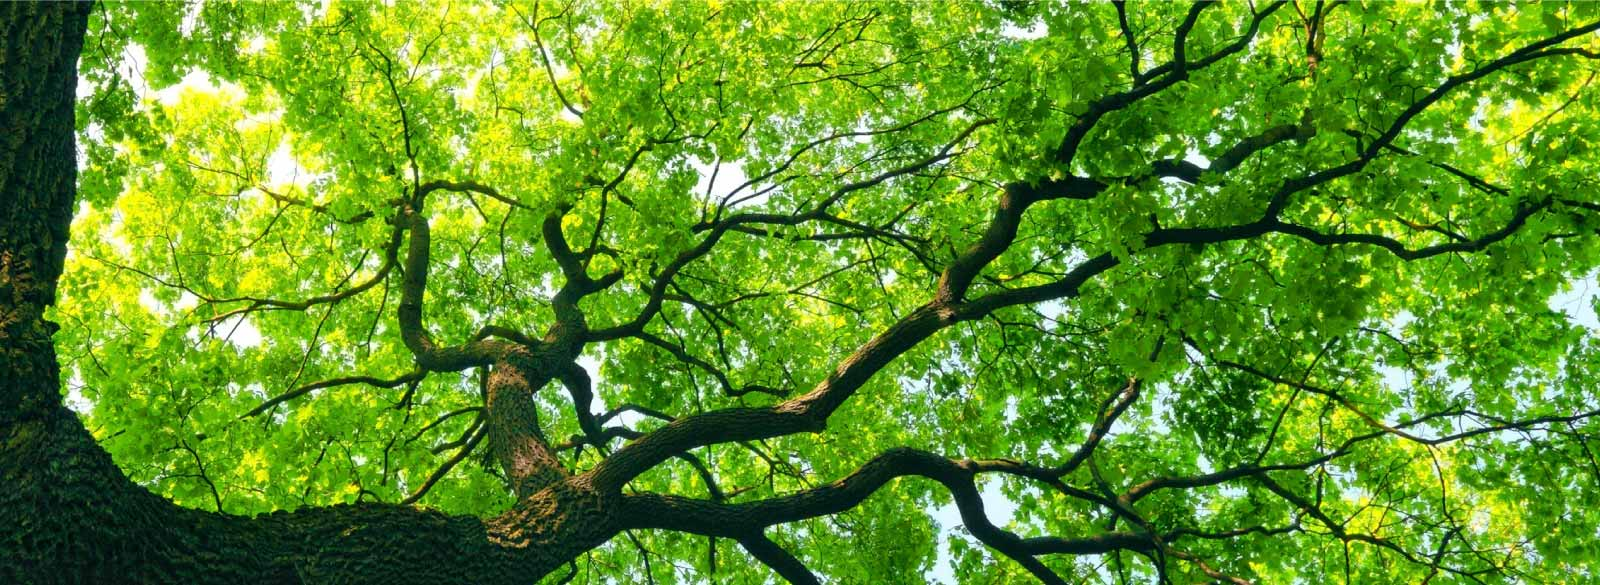 Looking overhead to see a large tree with broad branches.